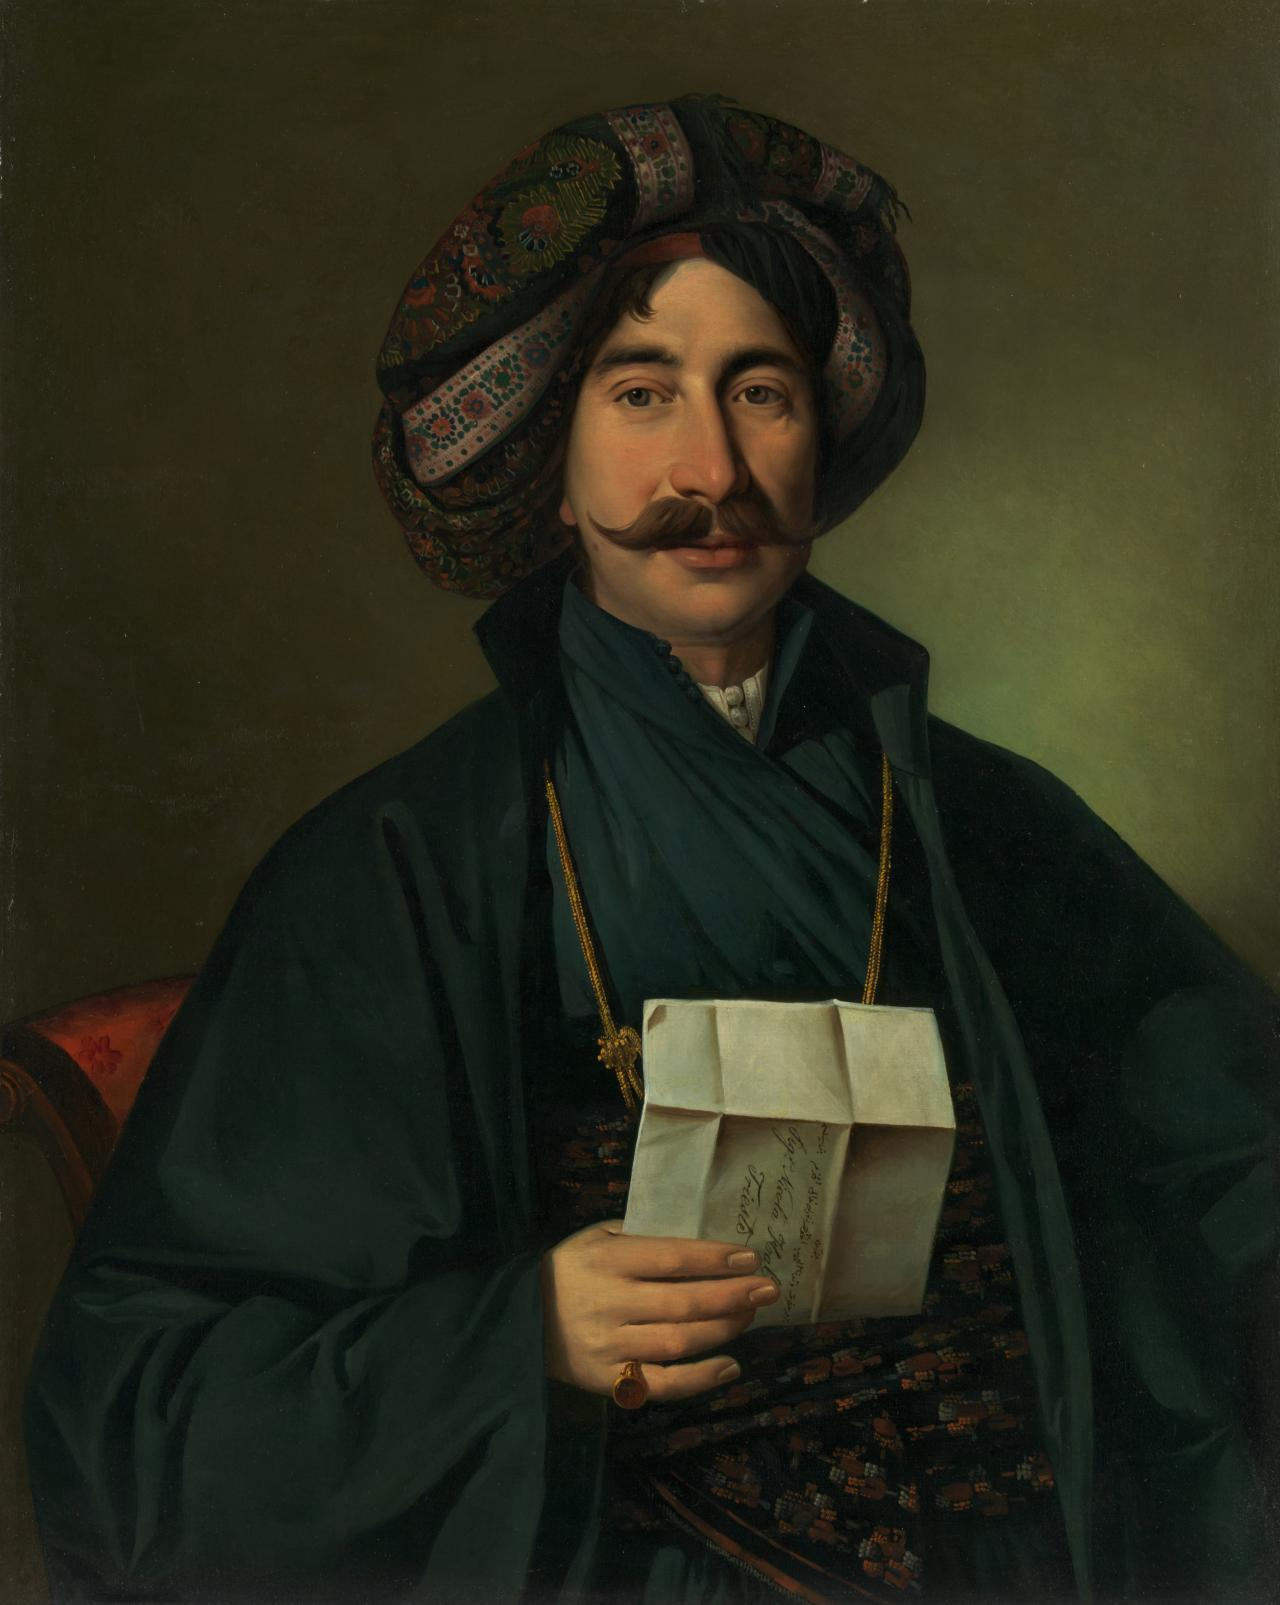 Man in Ottoman dress